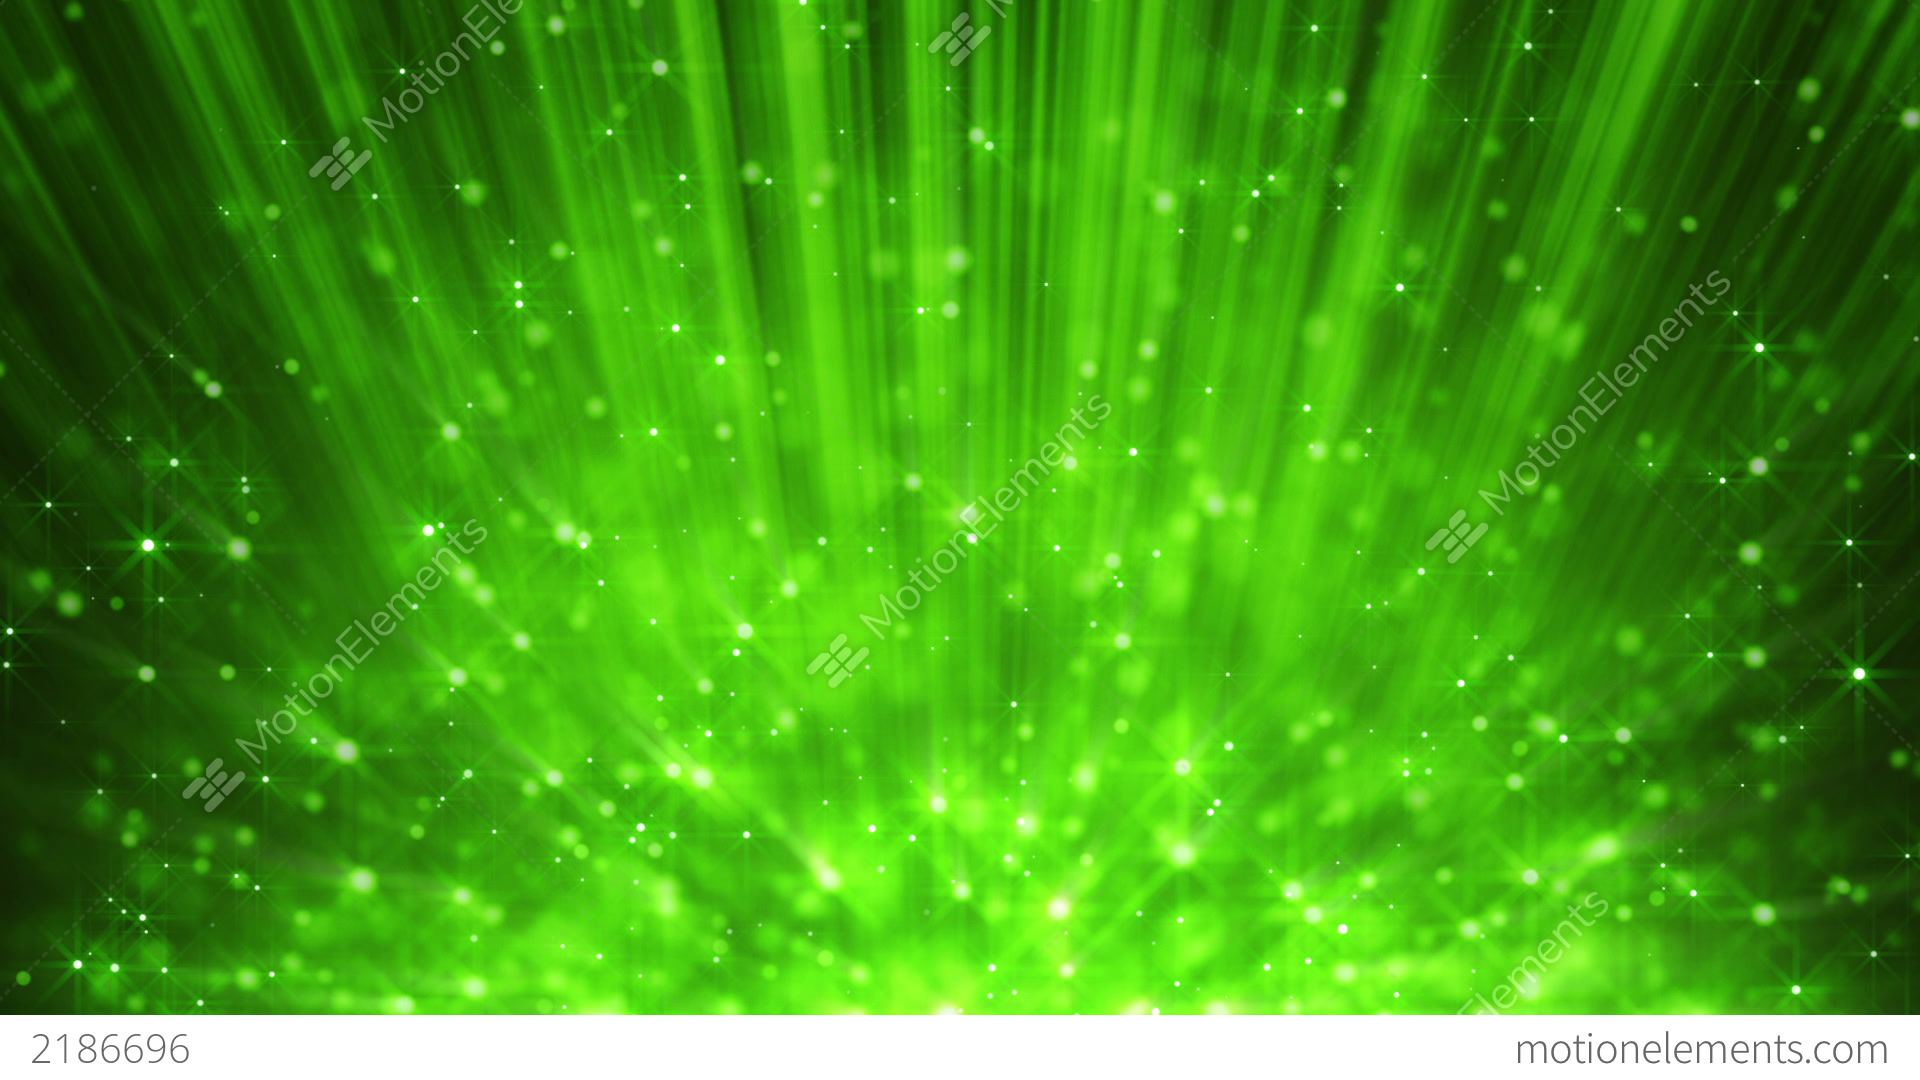 Green Light Effects Stock Footage Video: Green Light Beams And Rising Blinking Particles Lo Stock